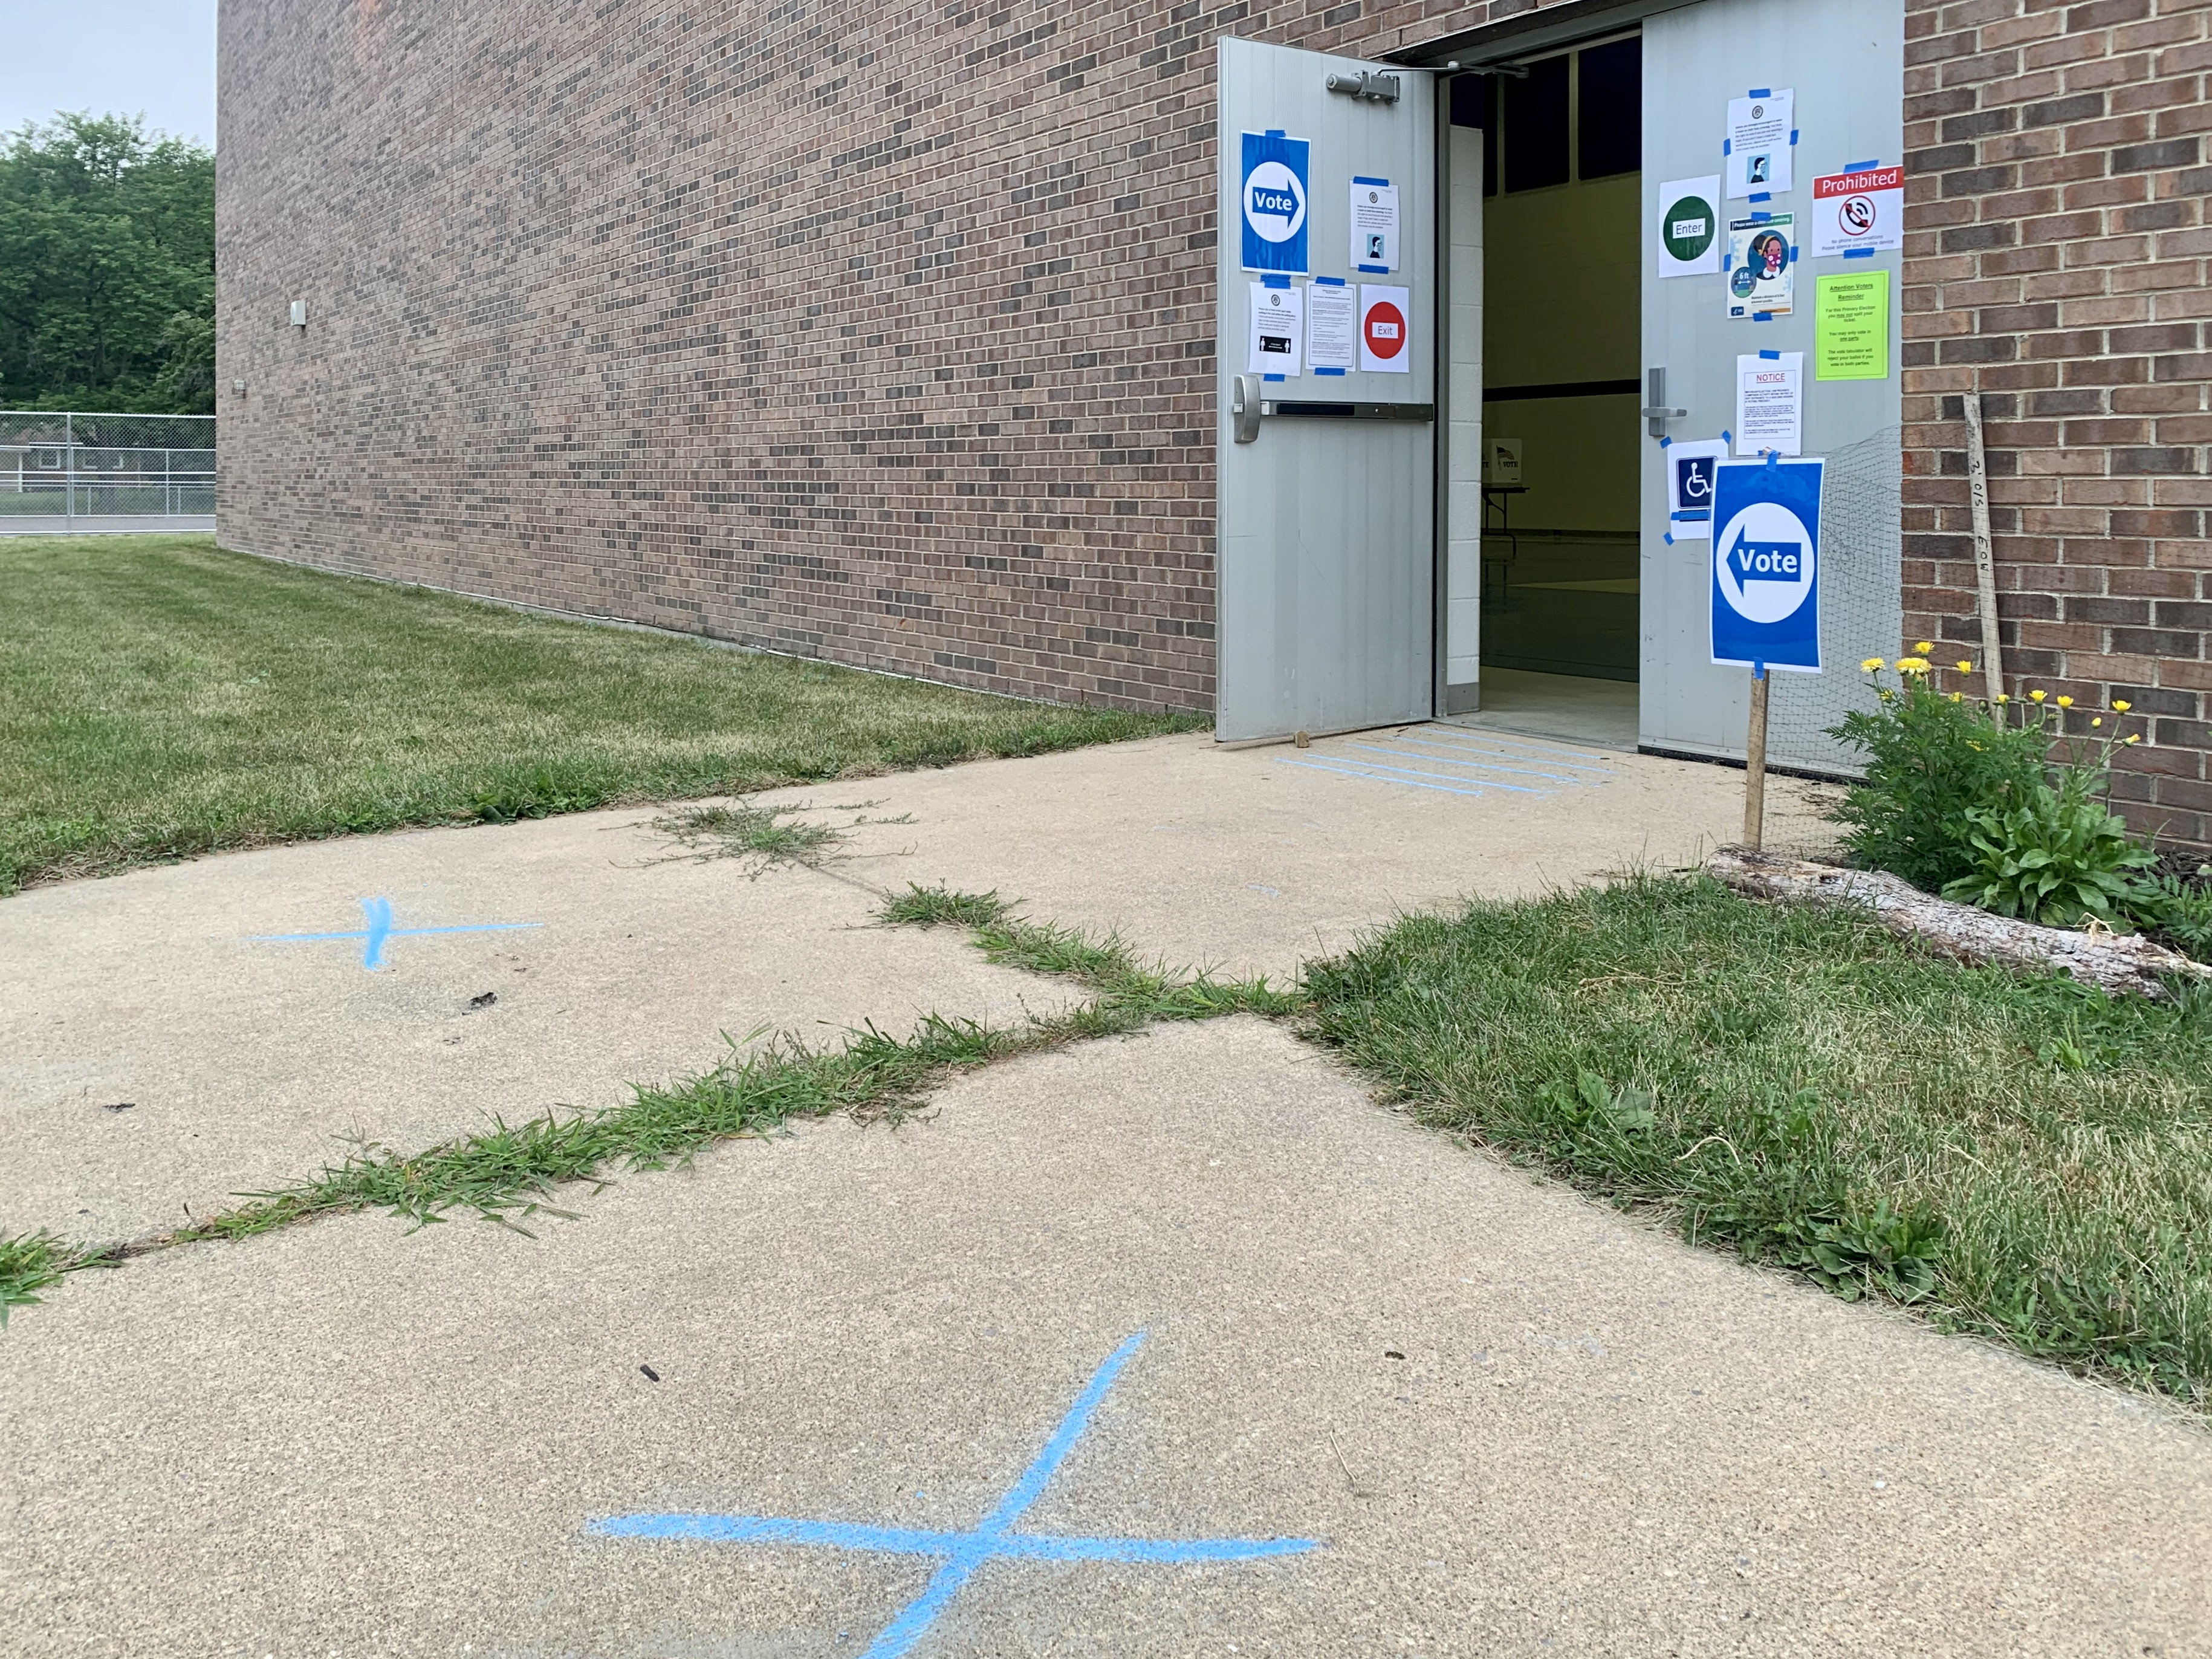 Polling places, with reminders to maintain social distancing because of the COVID-19 pandemic, opened across Michigan at 7 a.m. Tuesday for the state's primary election. This one is at Arcadia Elementary School on Aug. 4, 2020. (WWMT/Hannah Knowles)